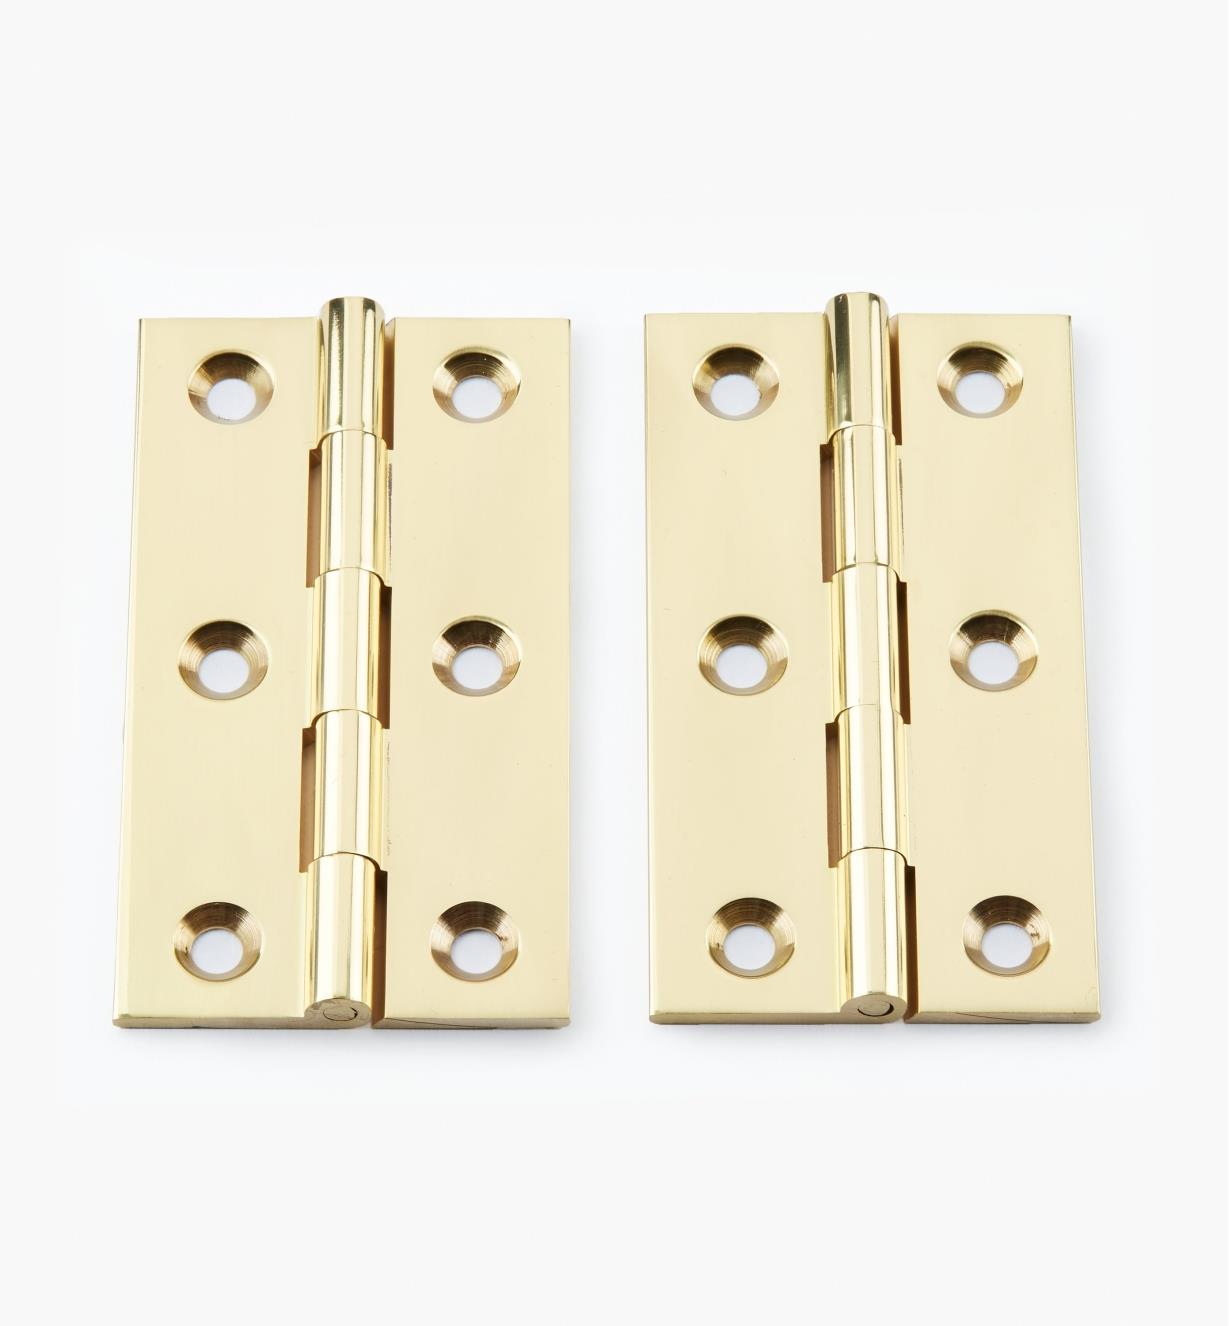 "00D0204 - 3"" × 1 11/16"" Extruded Brass Fixed-Pin Butt Hinges, pr."